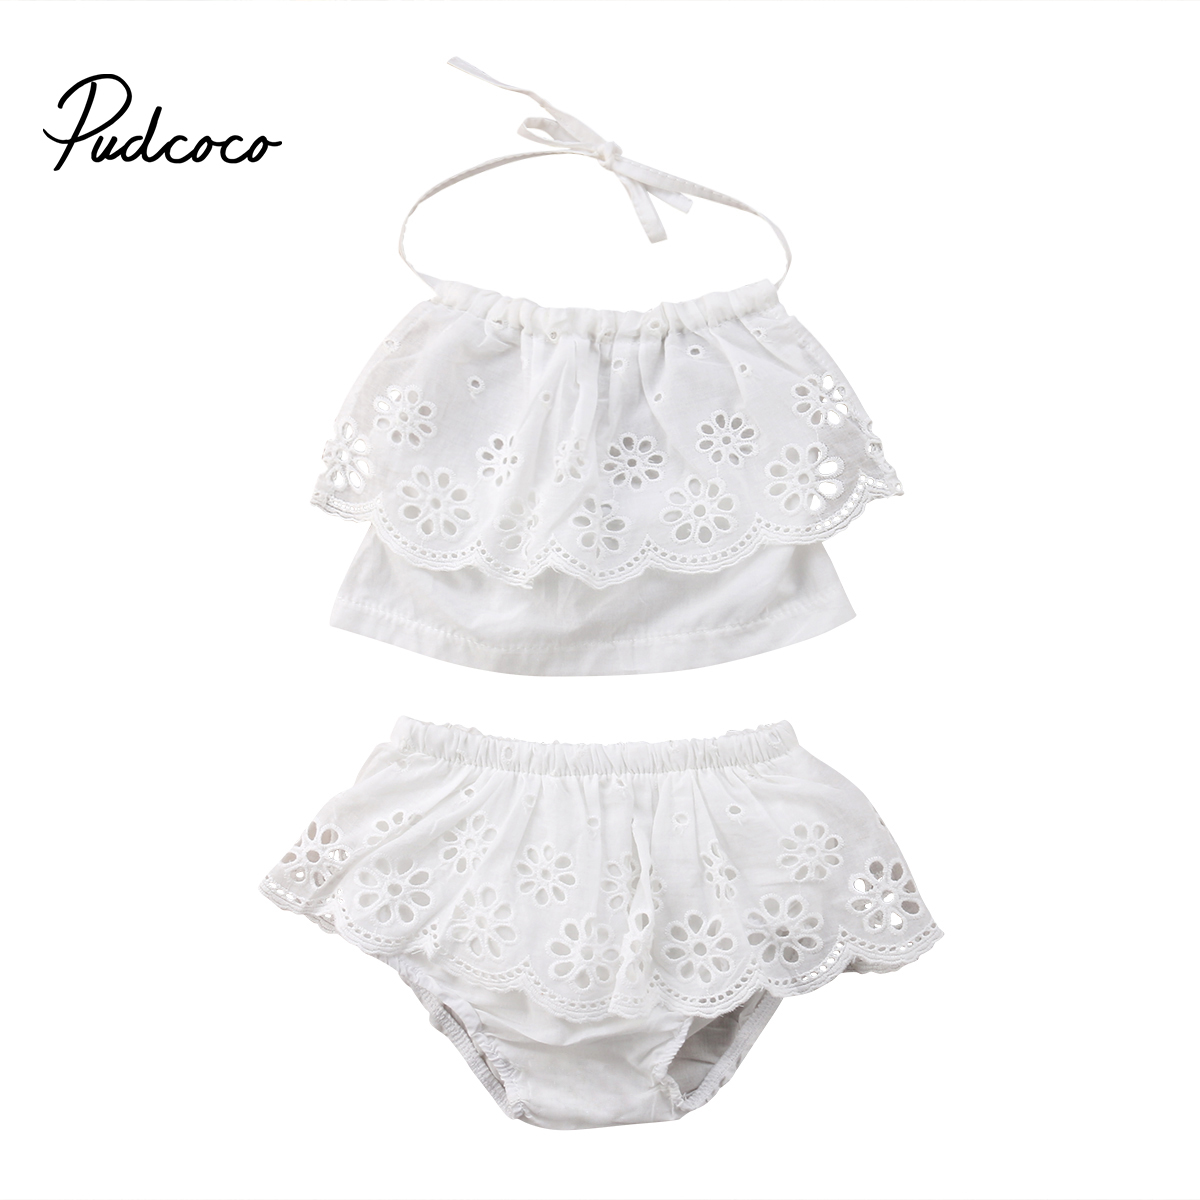 2018 Toddler Kids Girls Clothes Lace Halter Tops+Shorts Bottoms Summer Newborn Baby White Clothing Outfit Set 2pcs